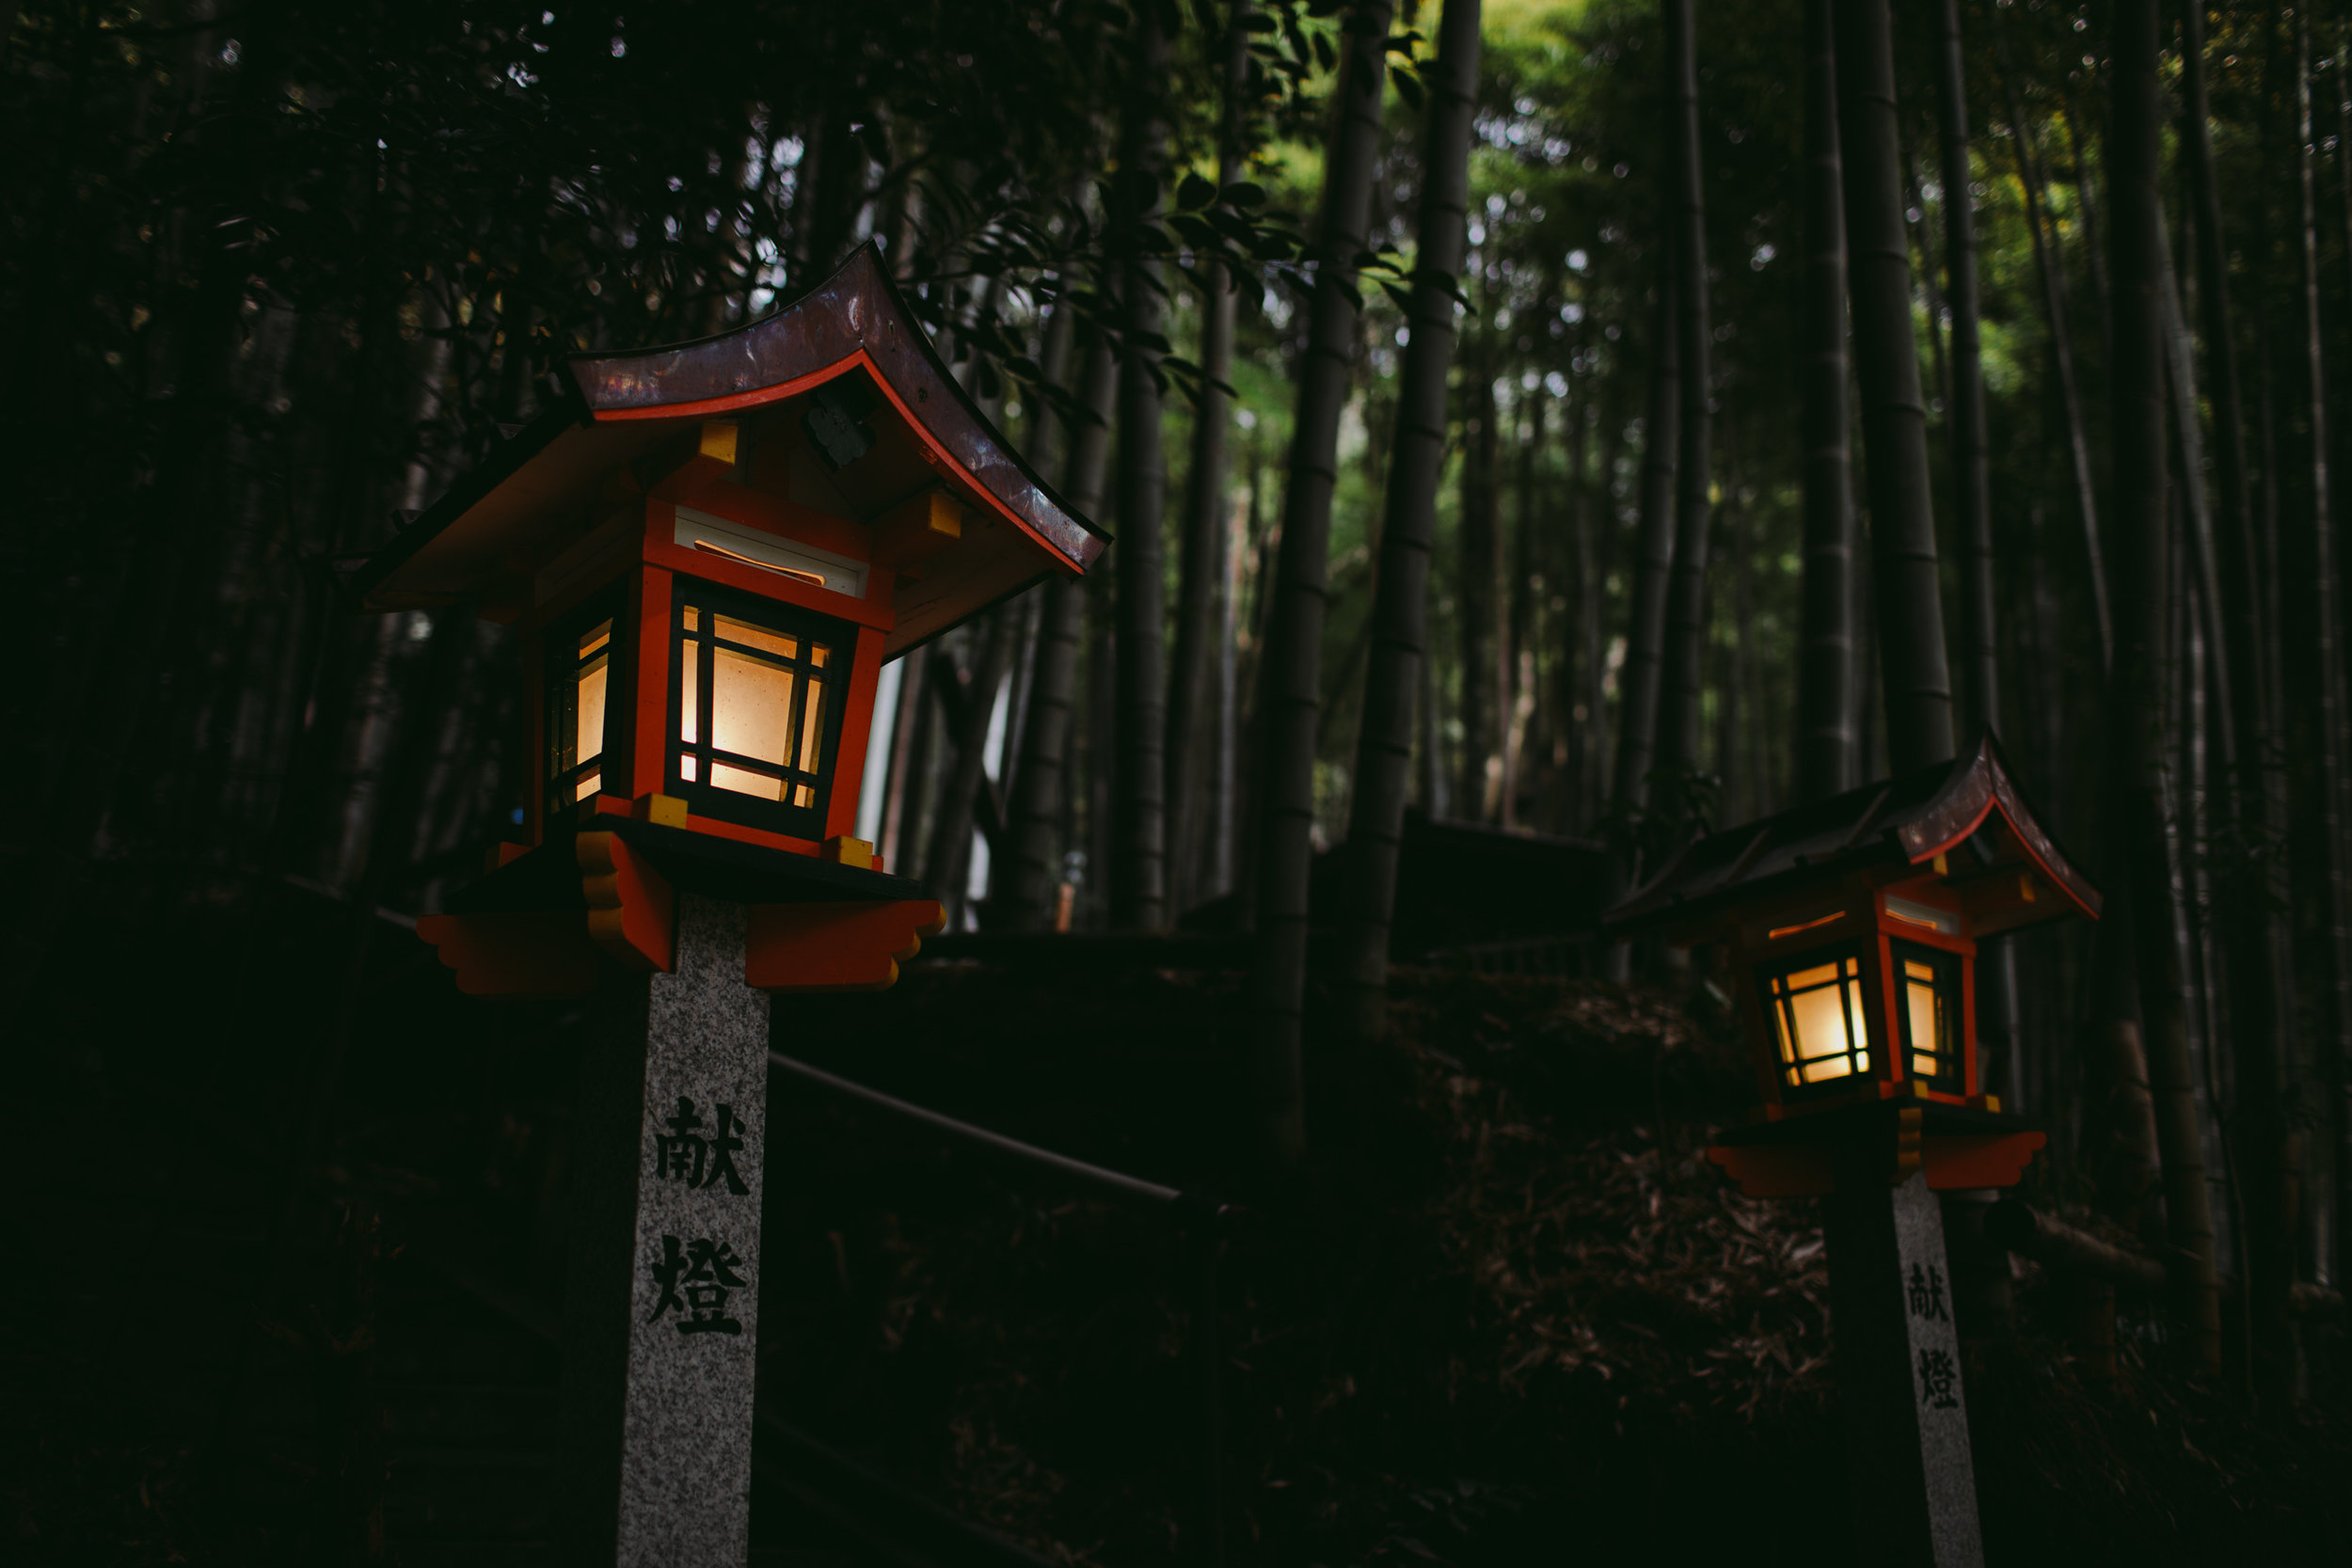 MikeSeehagel-commercial-lifestyle-travel-photography-Japan-49.jpg